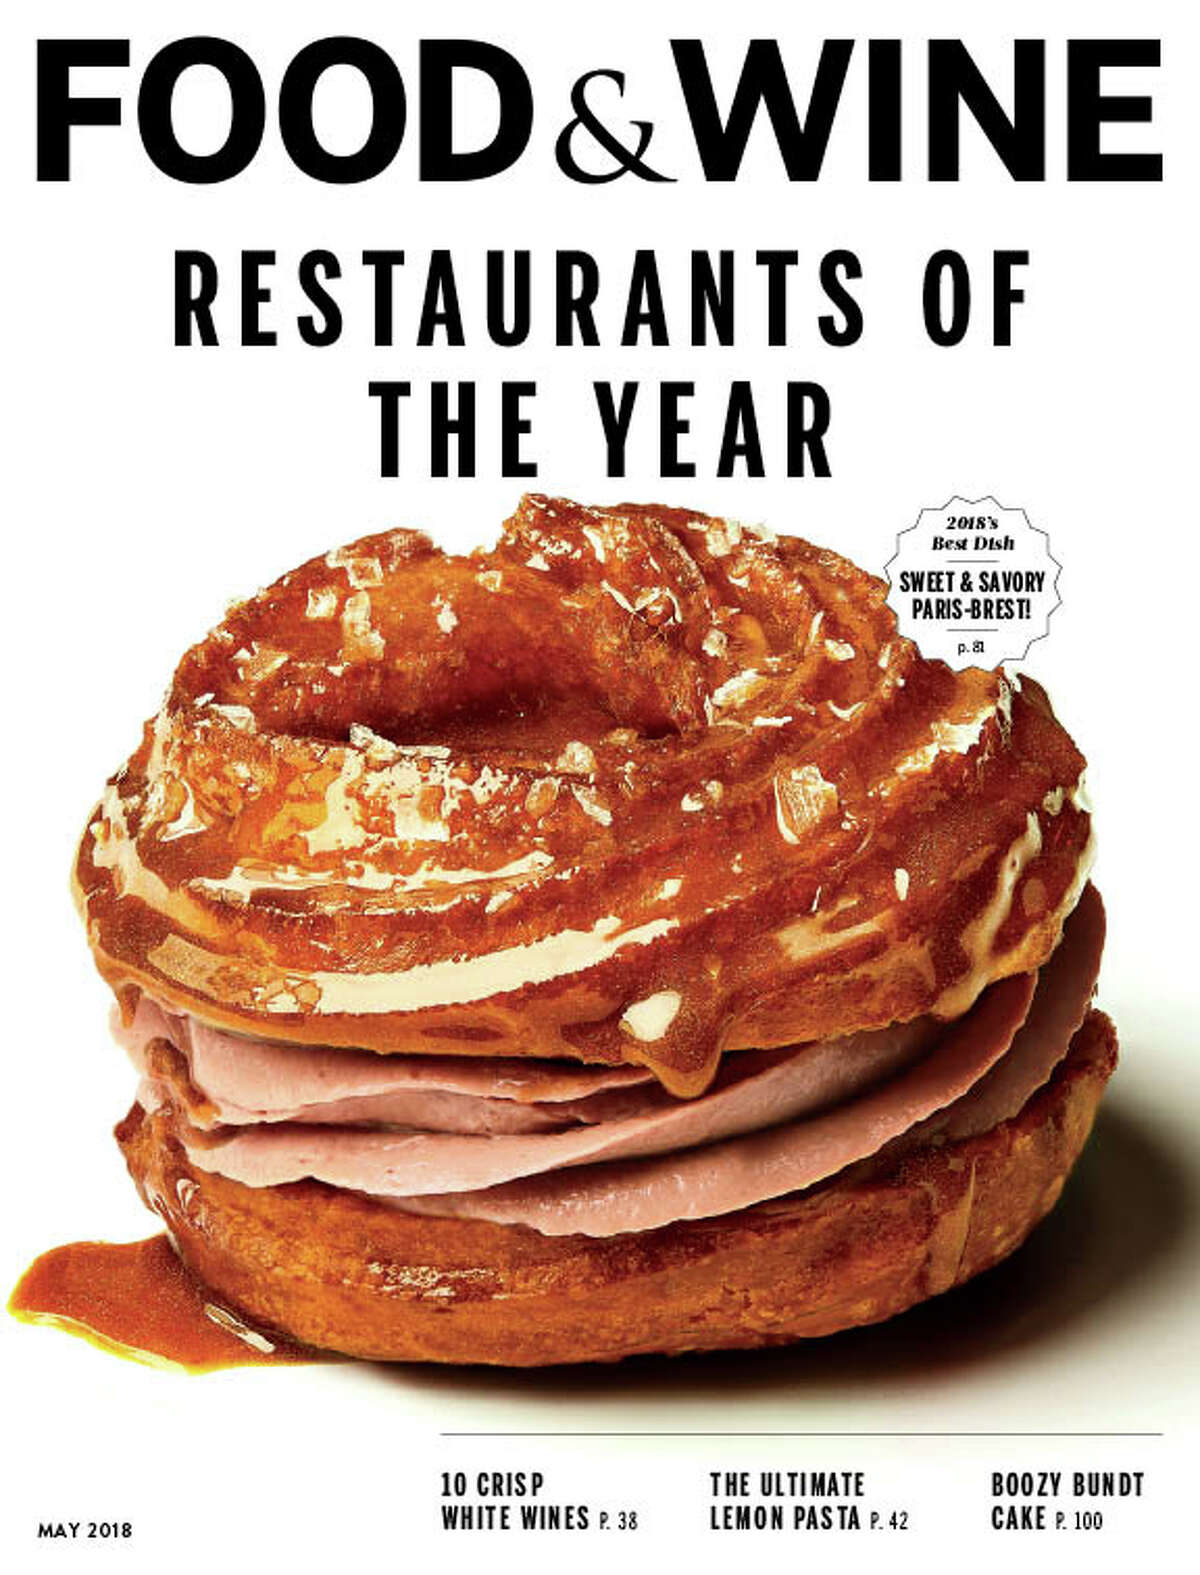 Better Luck Tomorrow in the Heights has been named one of Food & Wine's Restaurants of the Year 2018. The